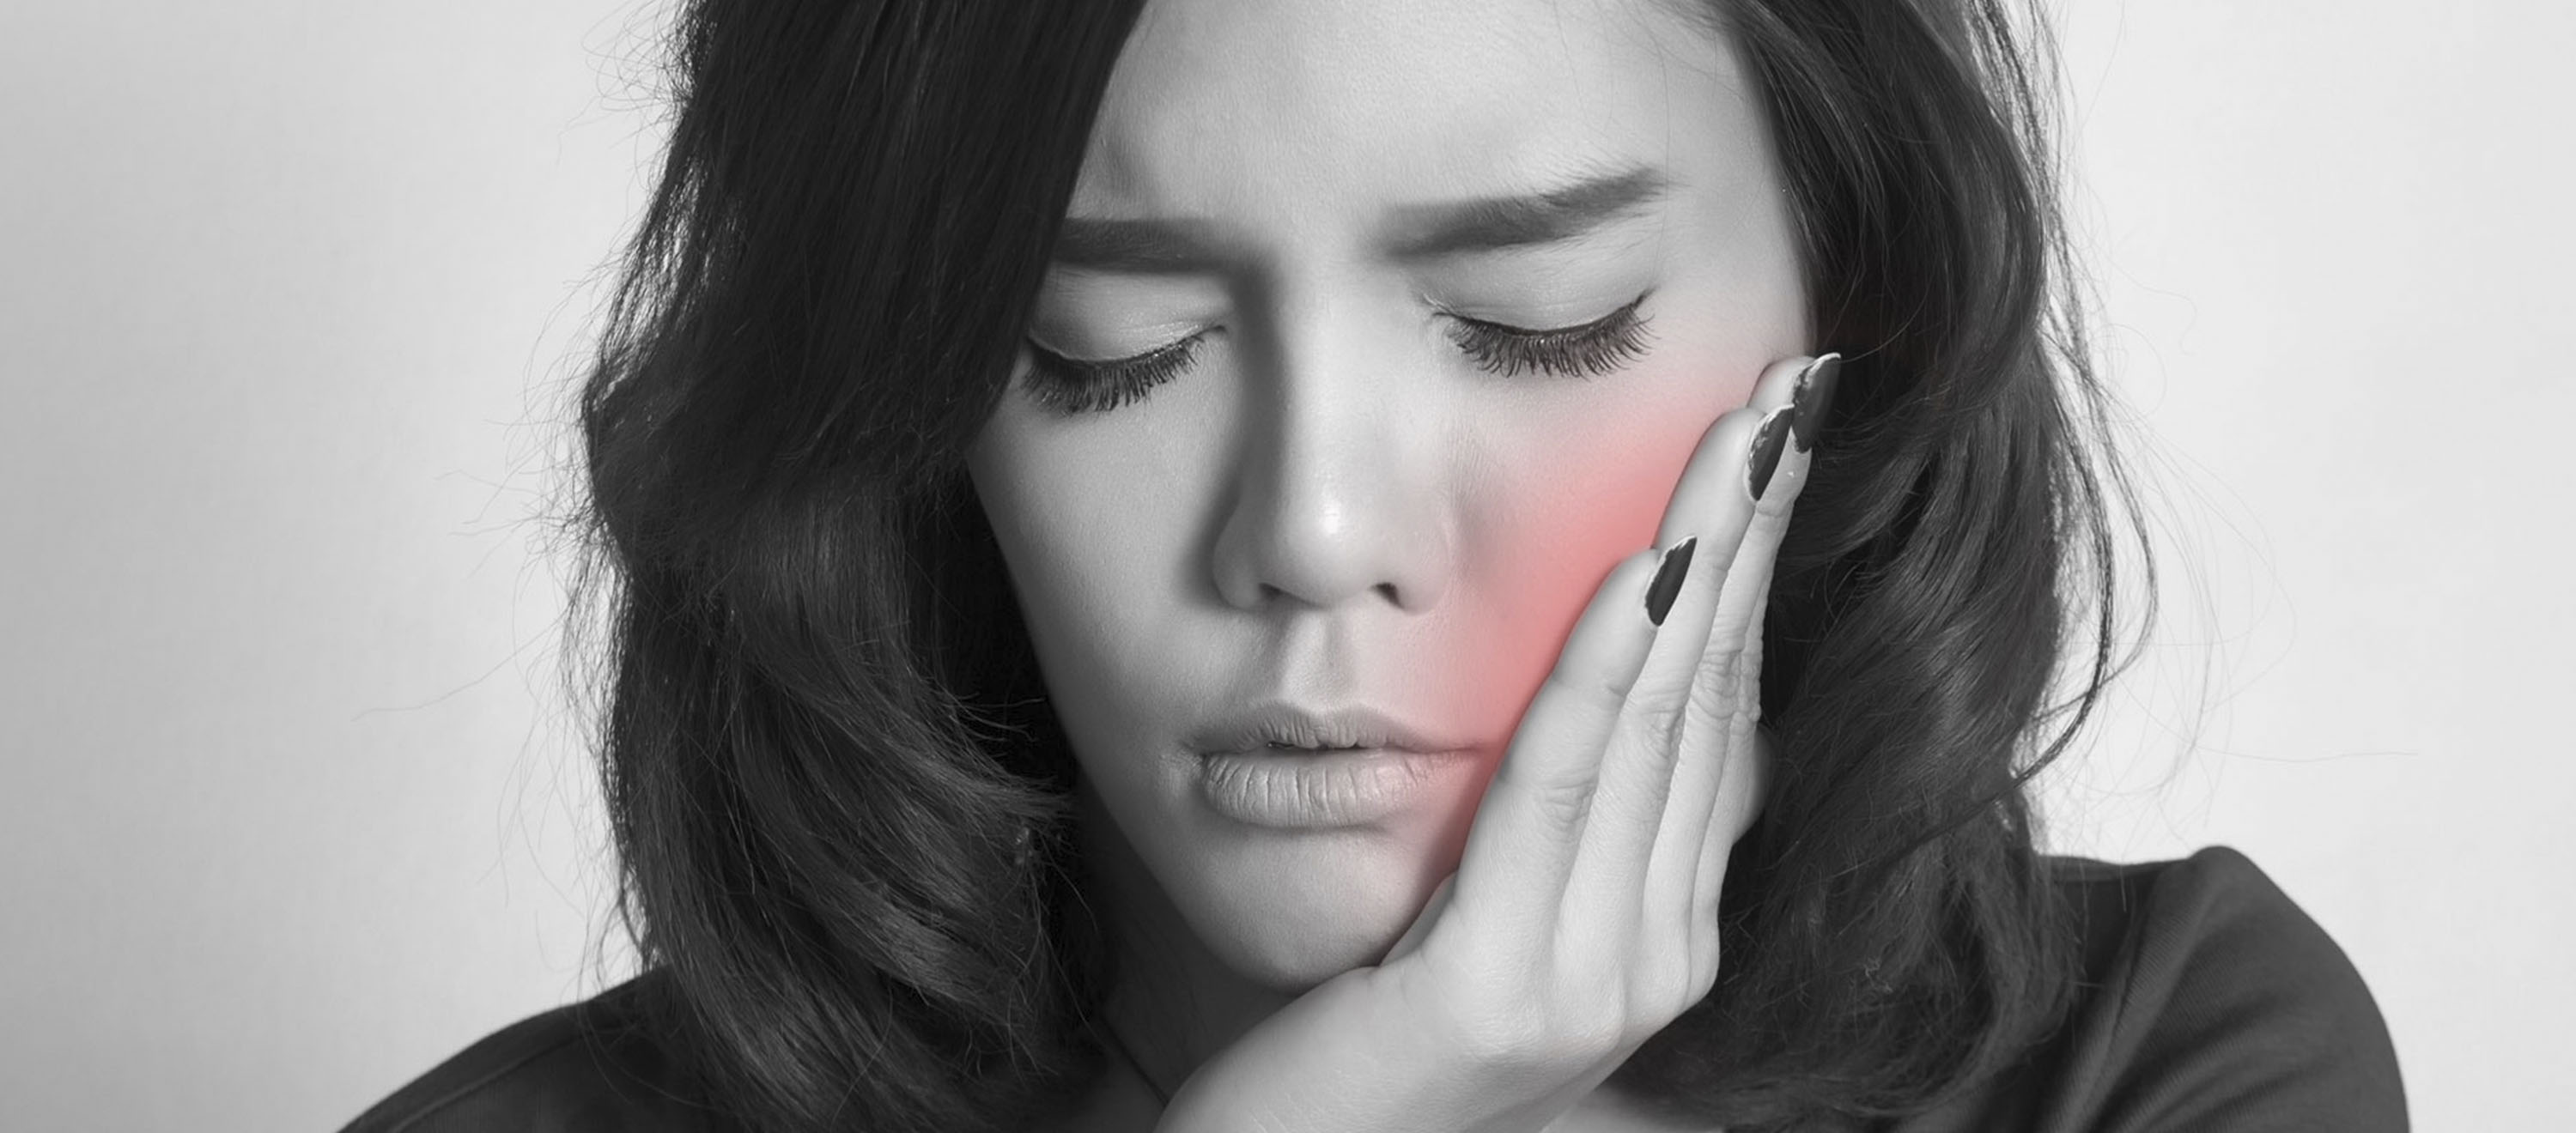 Wisdom tooth, pain A pretty young woman has severe pain in her wisdom tooth.